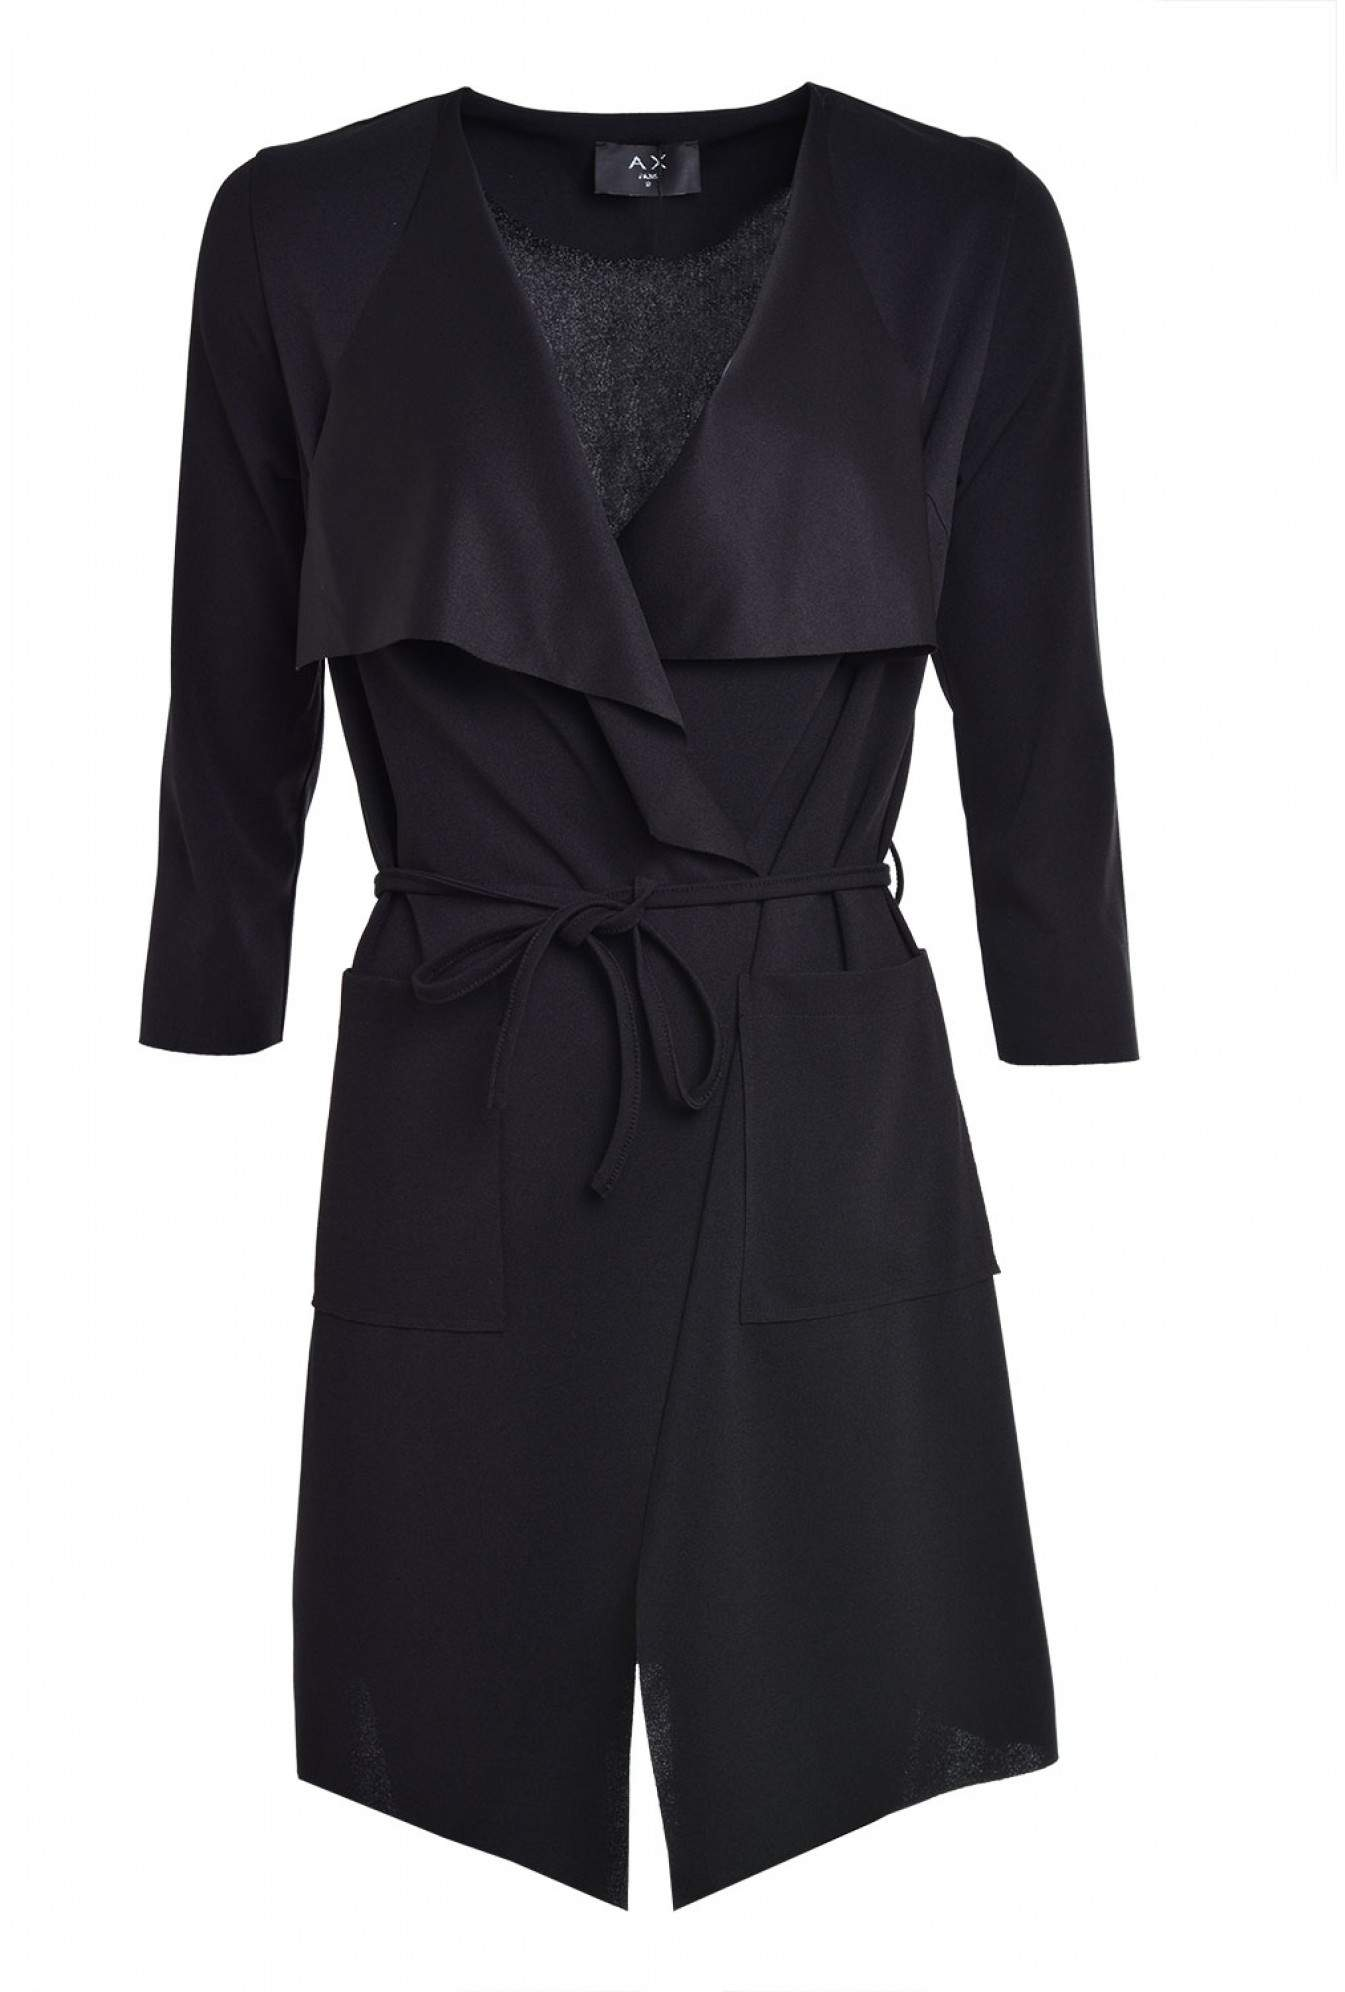 a8a0b8b3d More Views. Susie Lightweight Tie Belt Jacket in Black. AX Paris